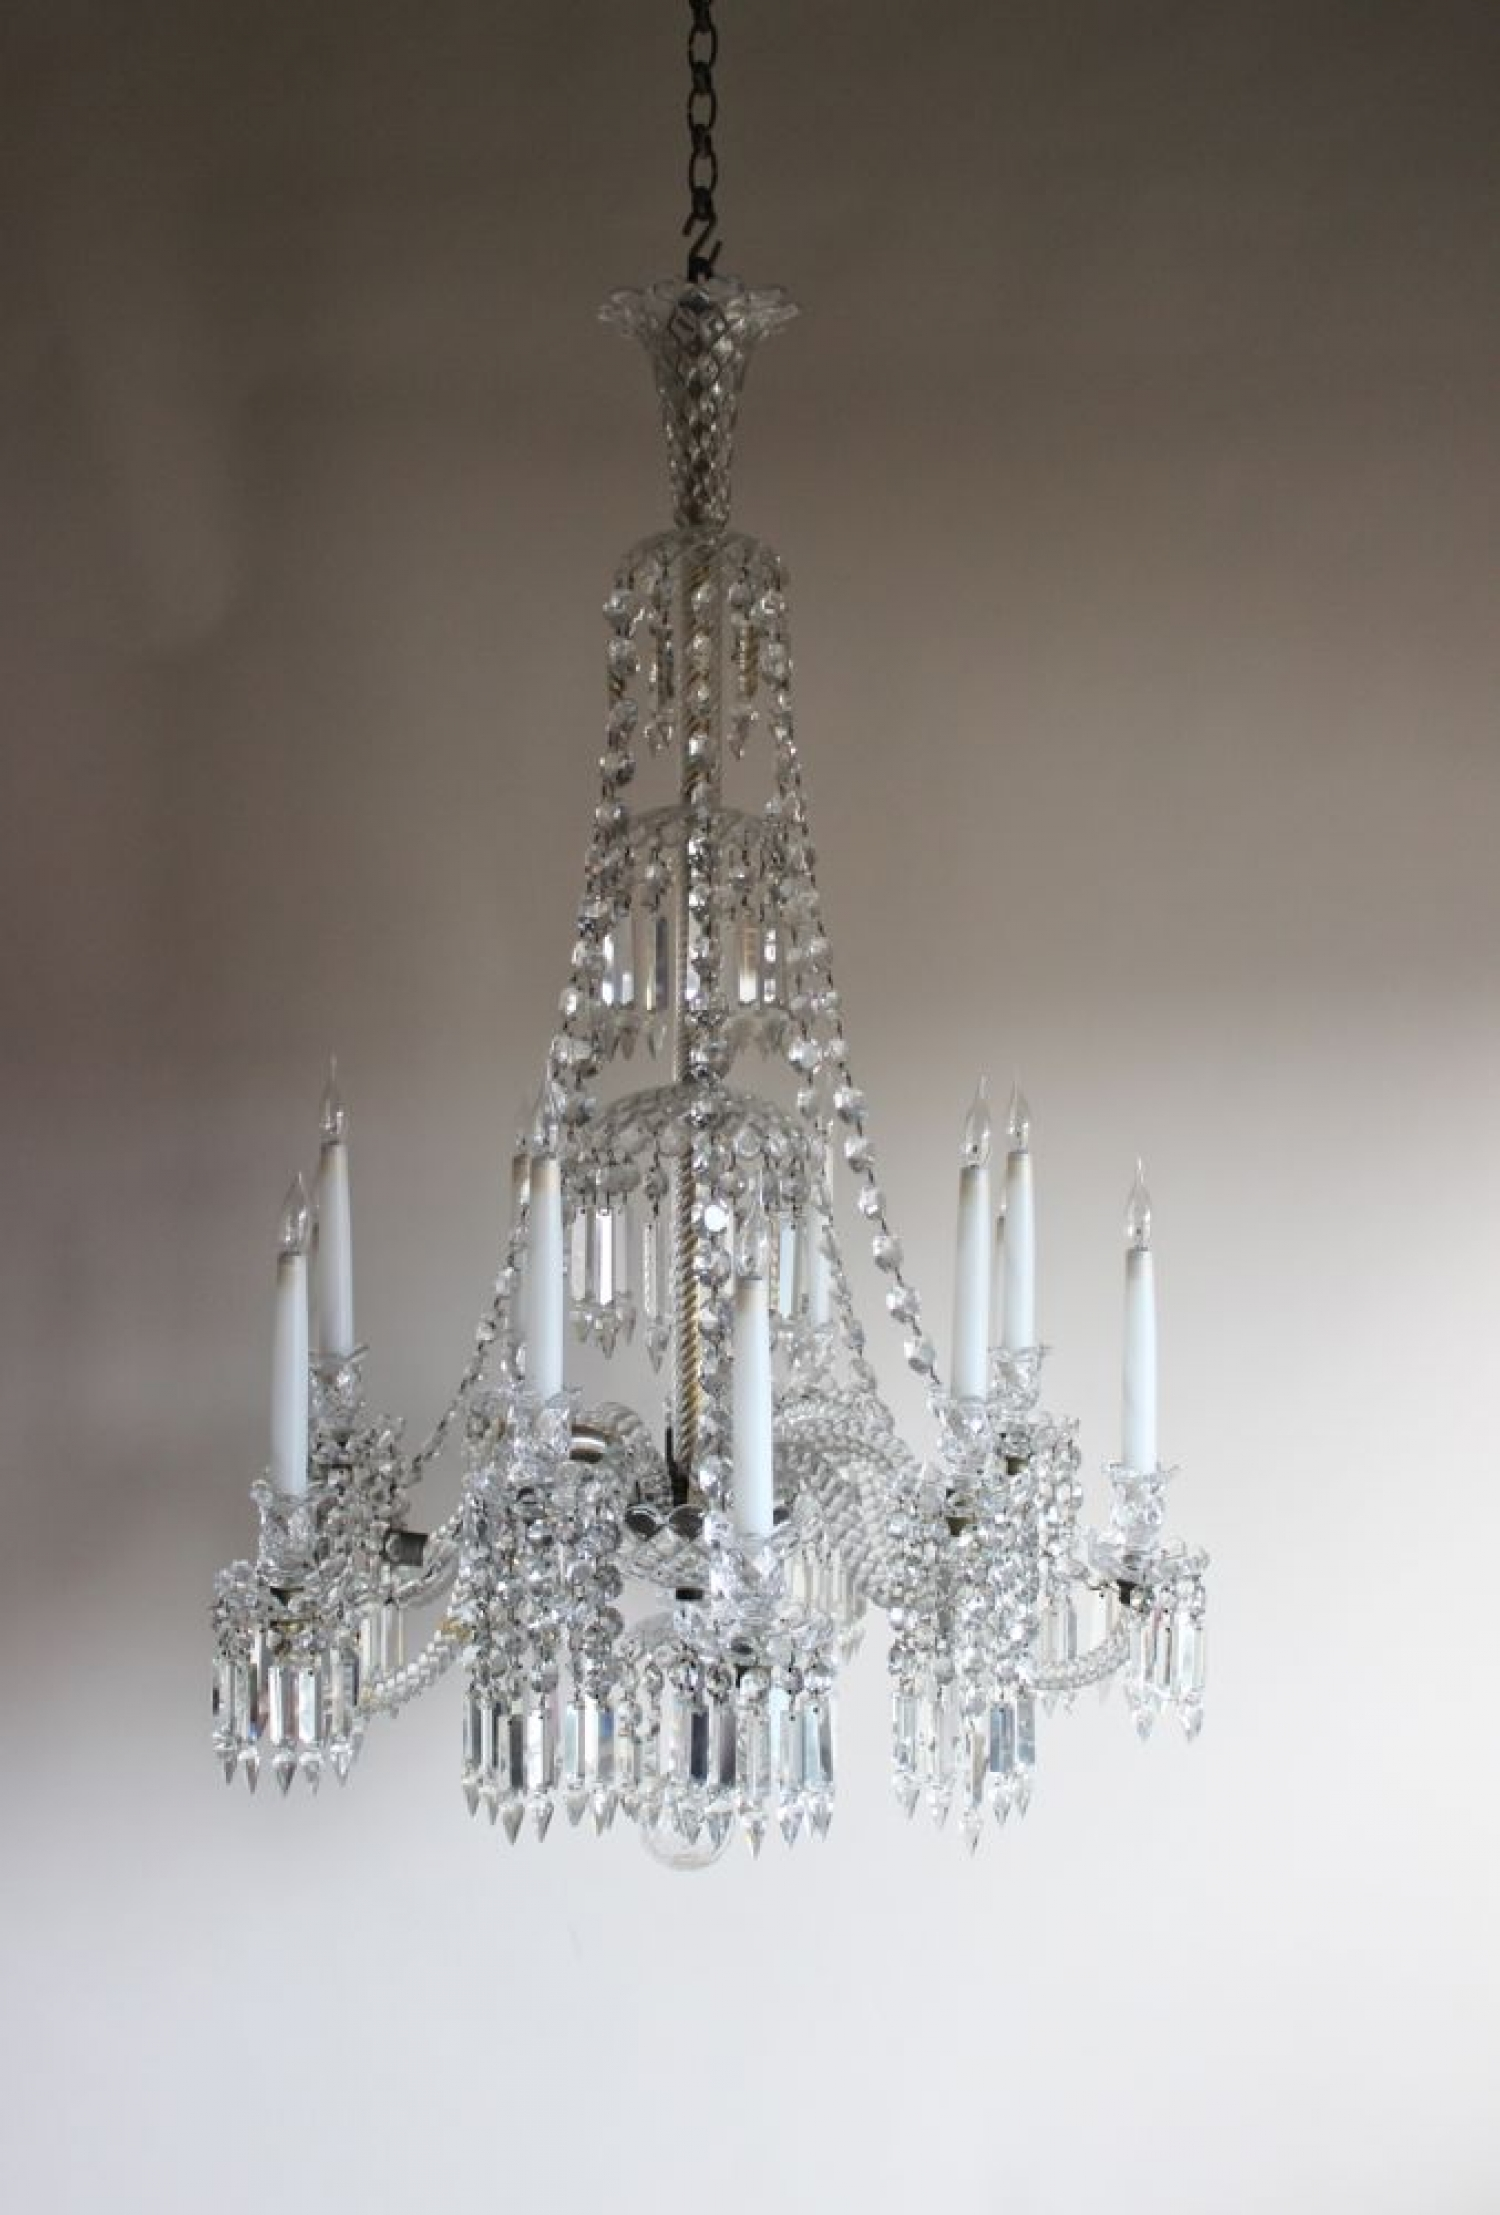 Two Glass Antique Chandeliers Both Beautiful Norfolk